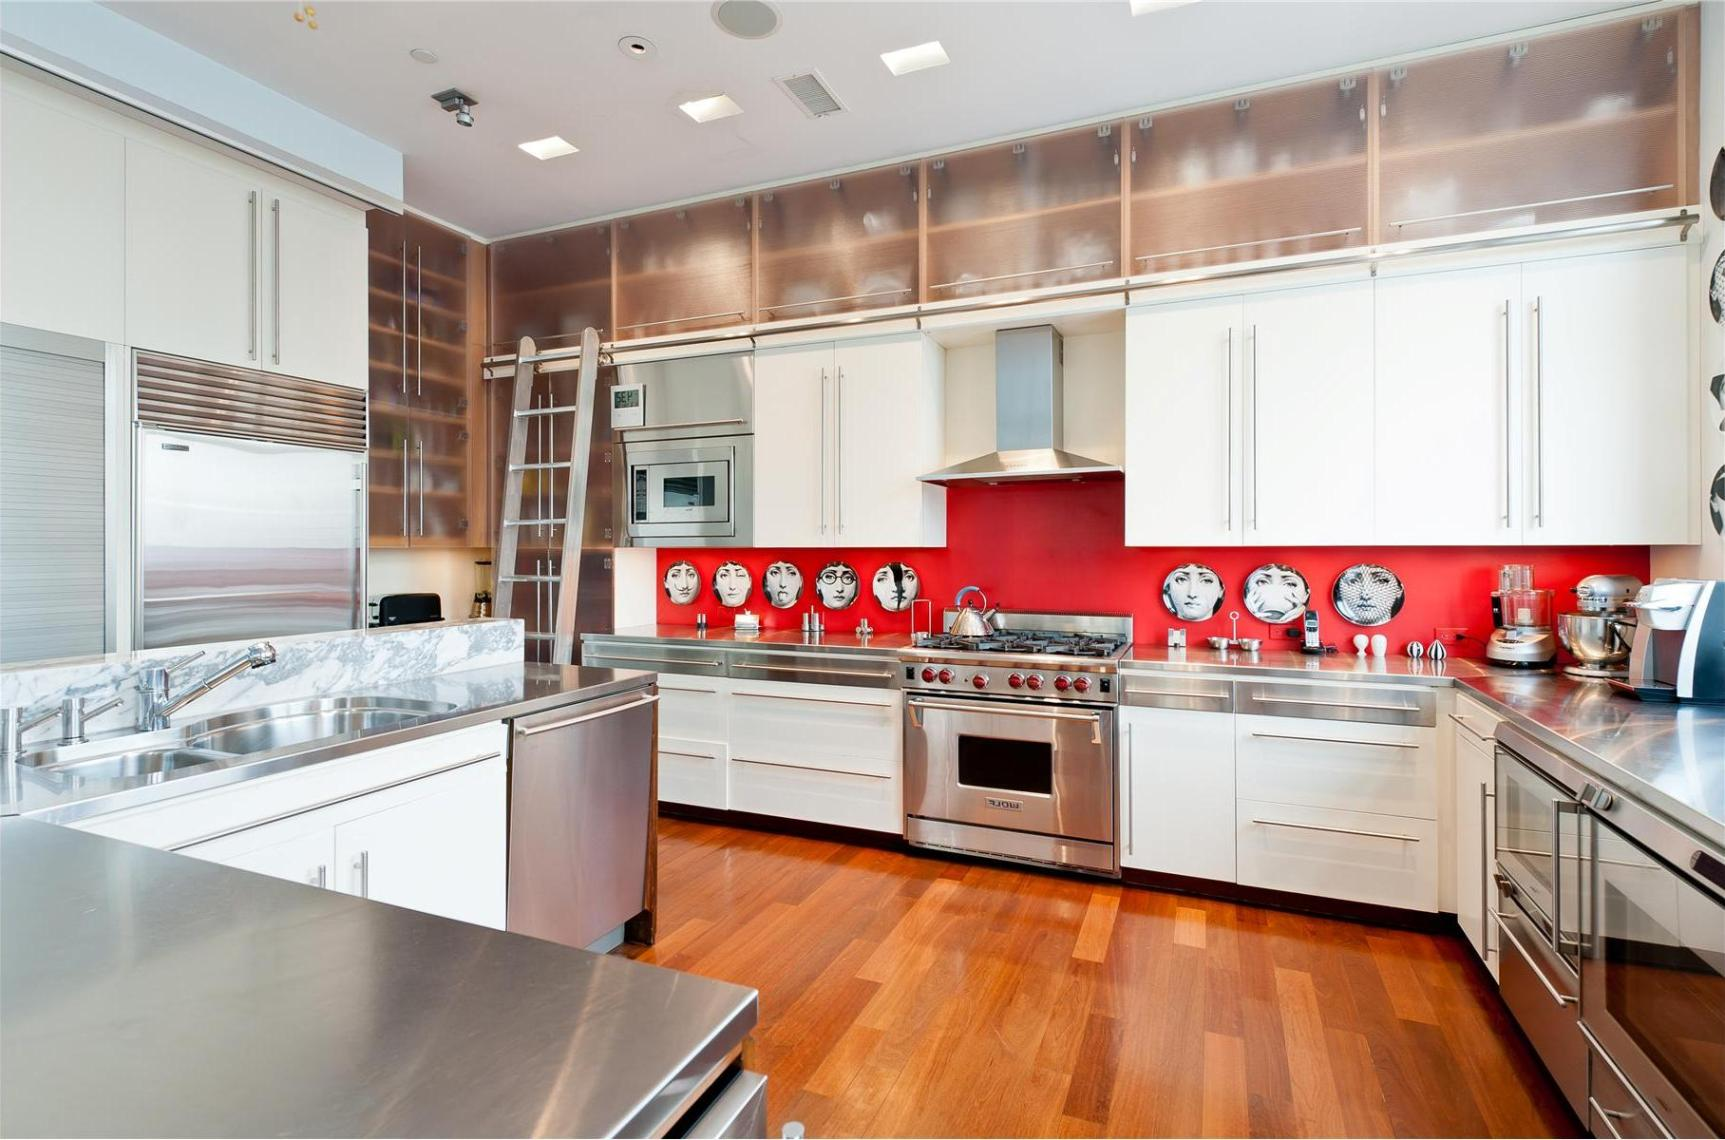 46 Best White Kitchen Cabinet Ideas for 2016